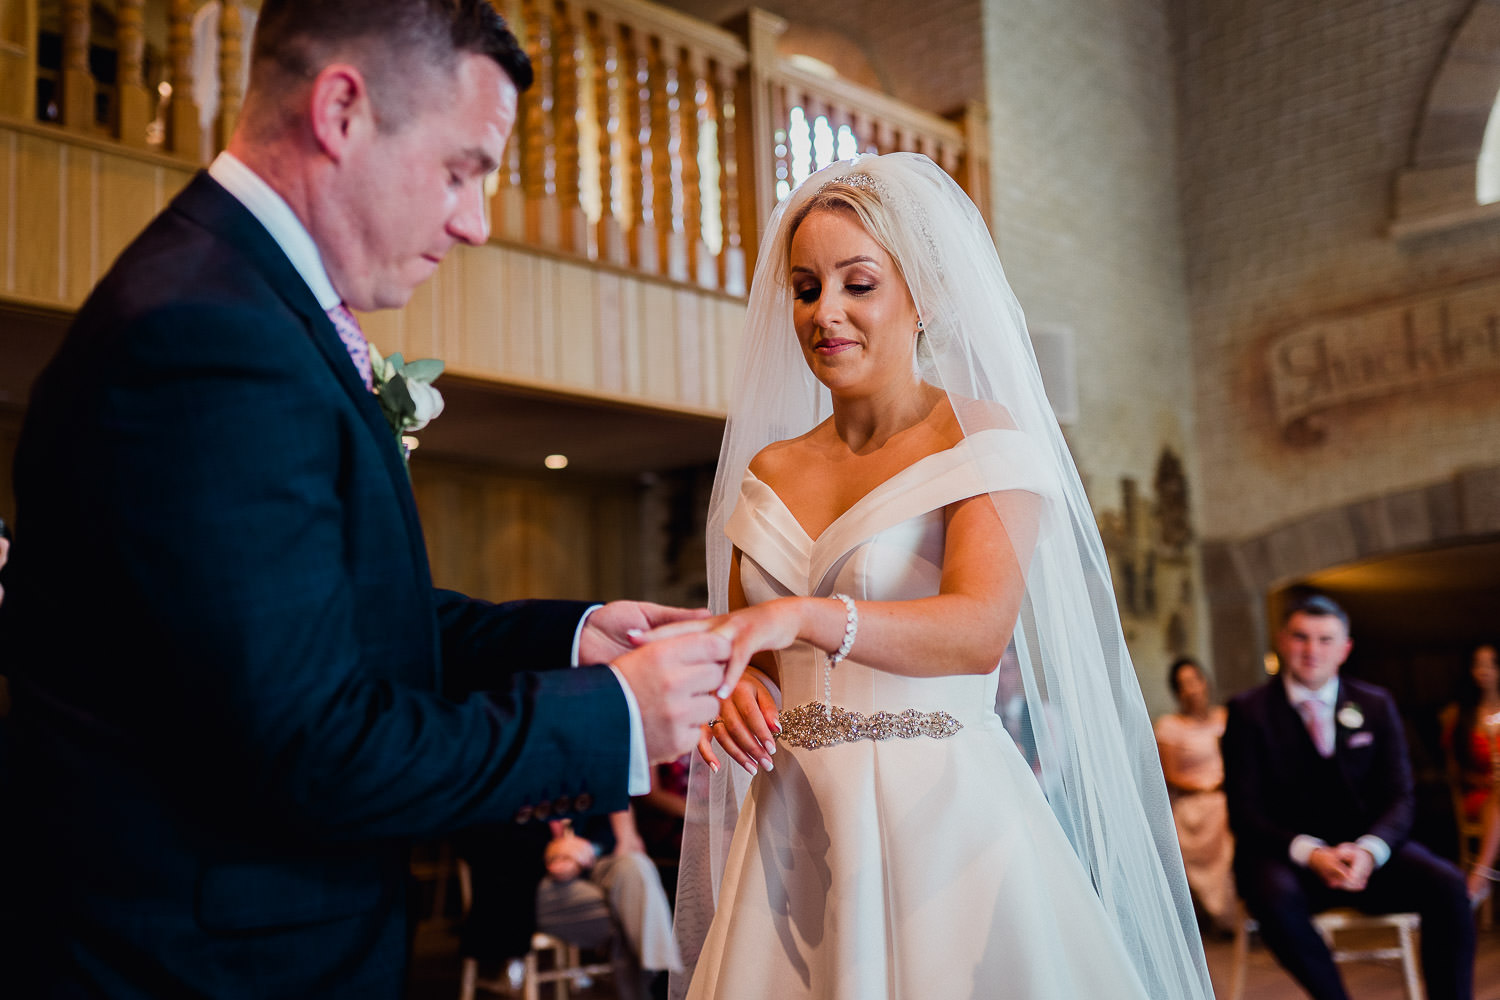 groom putting a ring on the bride finger